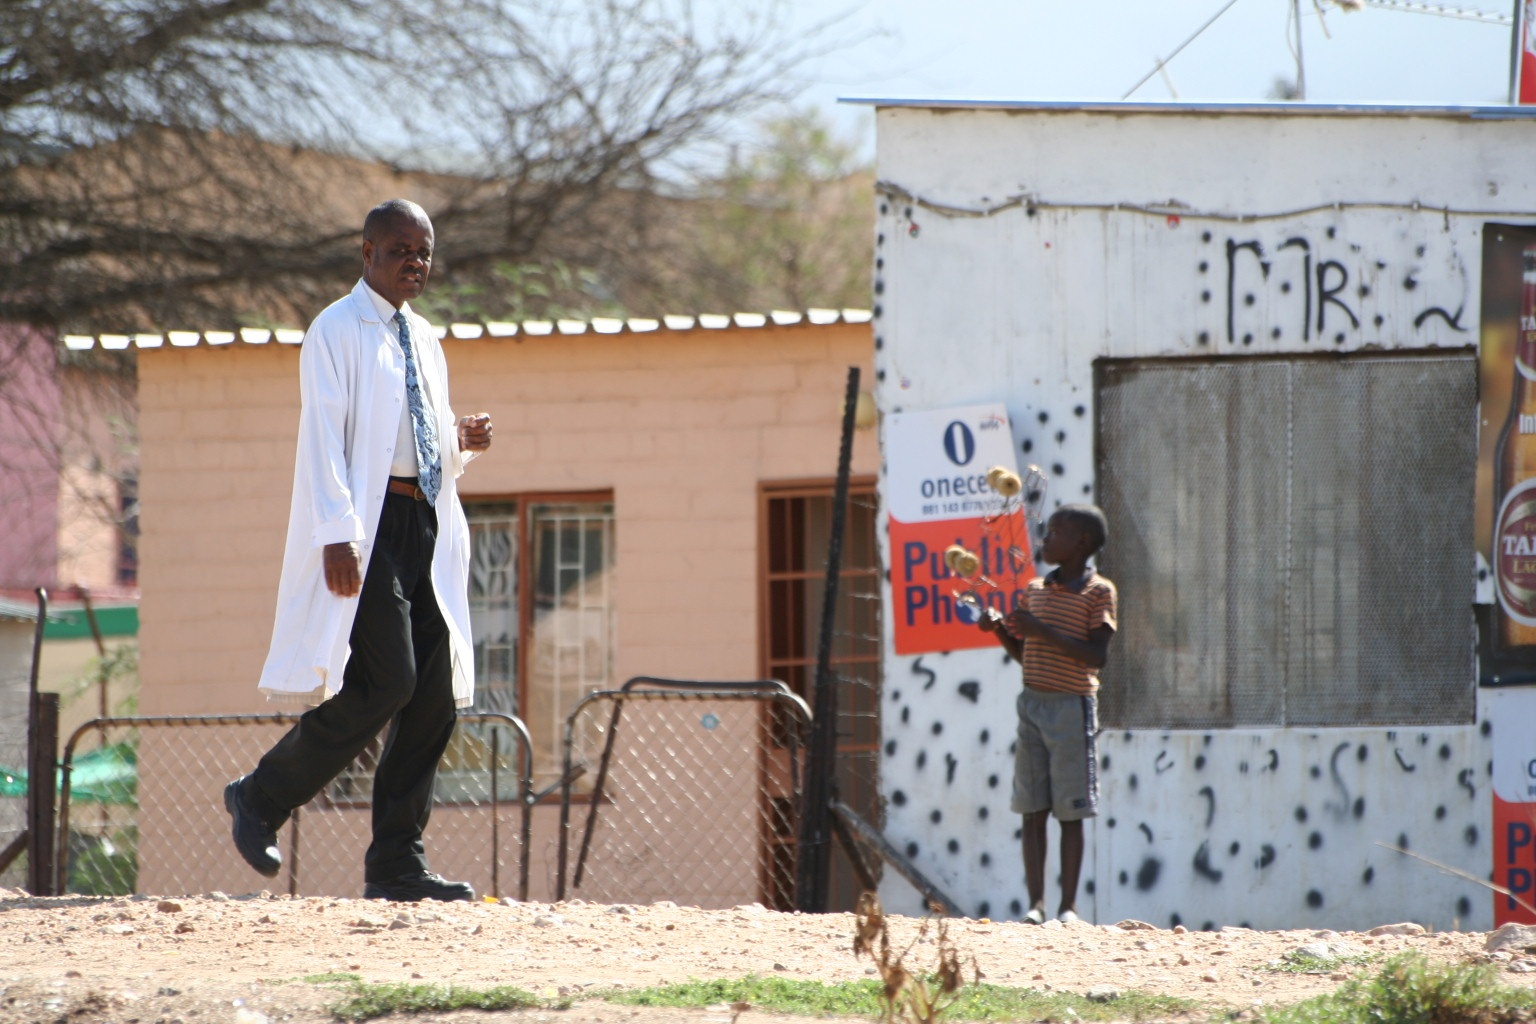 Contrasting clothes in township